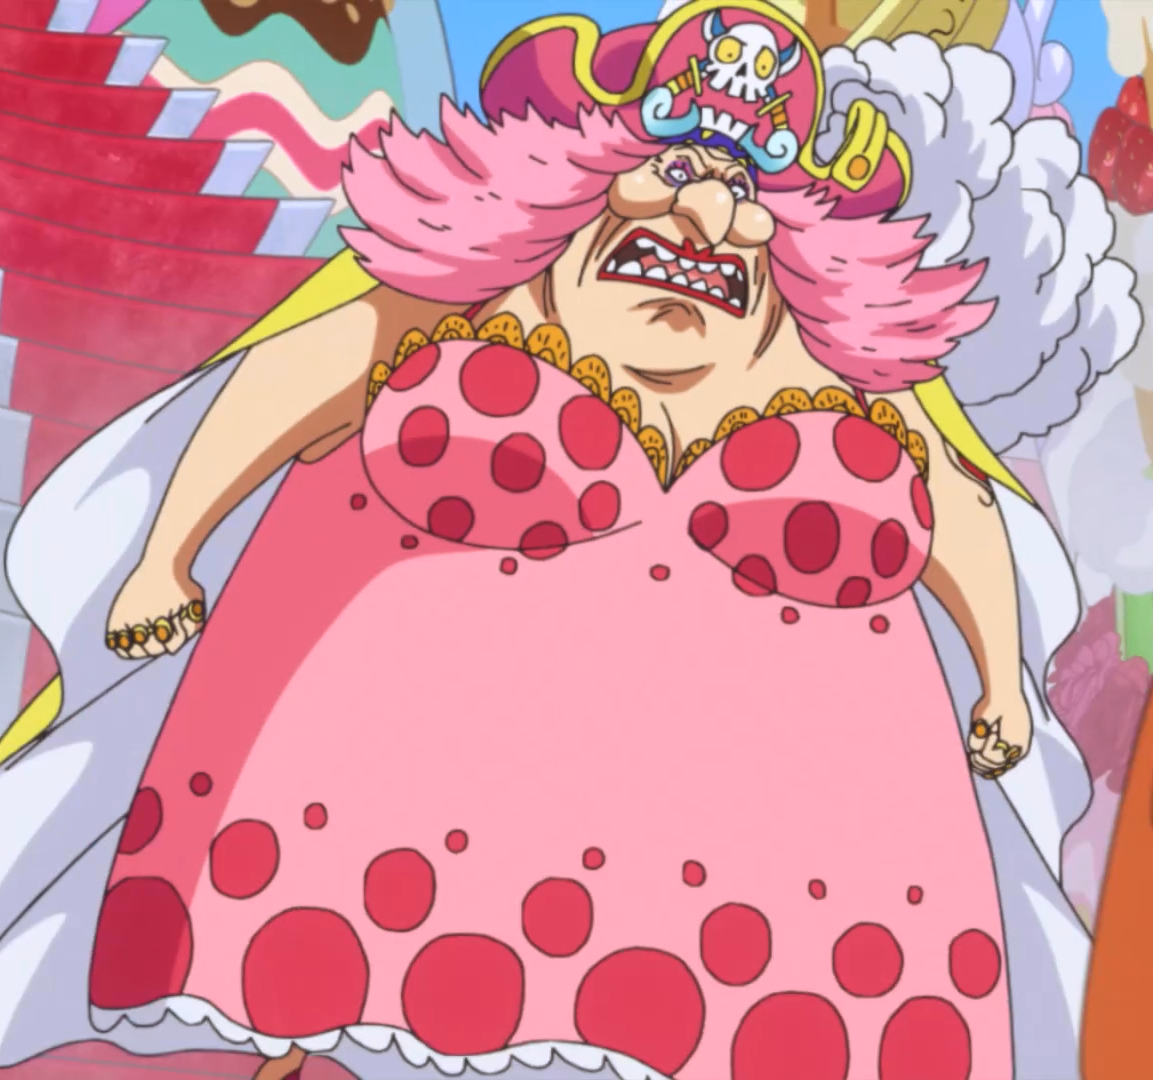 http://img4.wikia.nocookie.net/__cb20130112000416/onepiece/images/d/d8/Charlotte_Linlin_Anime_Infobox.png